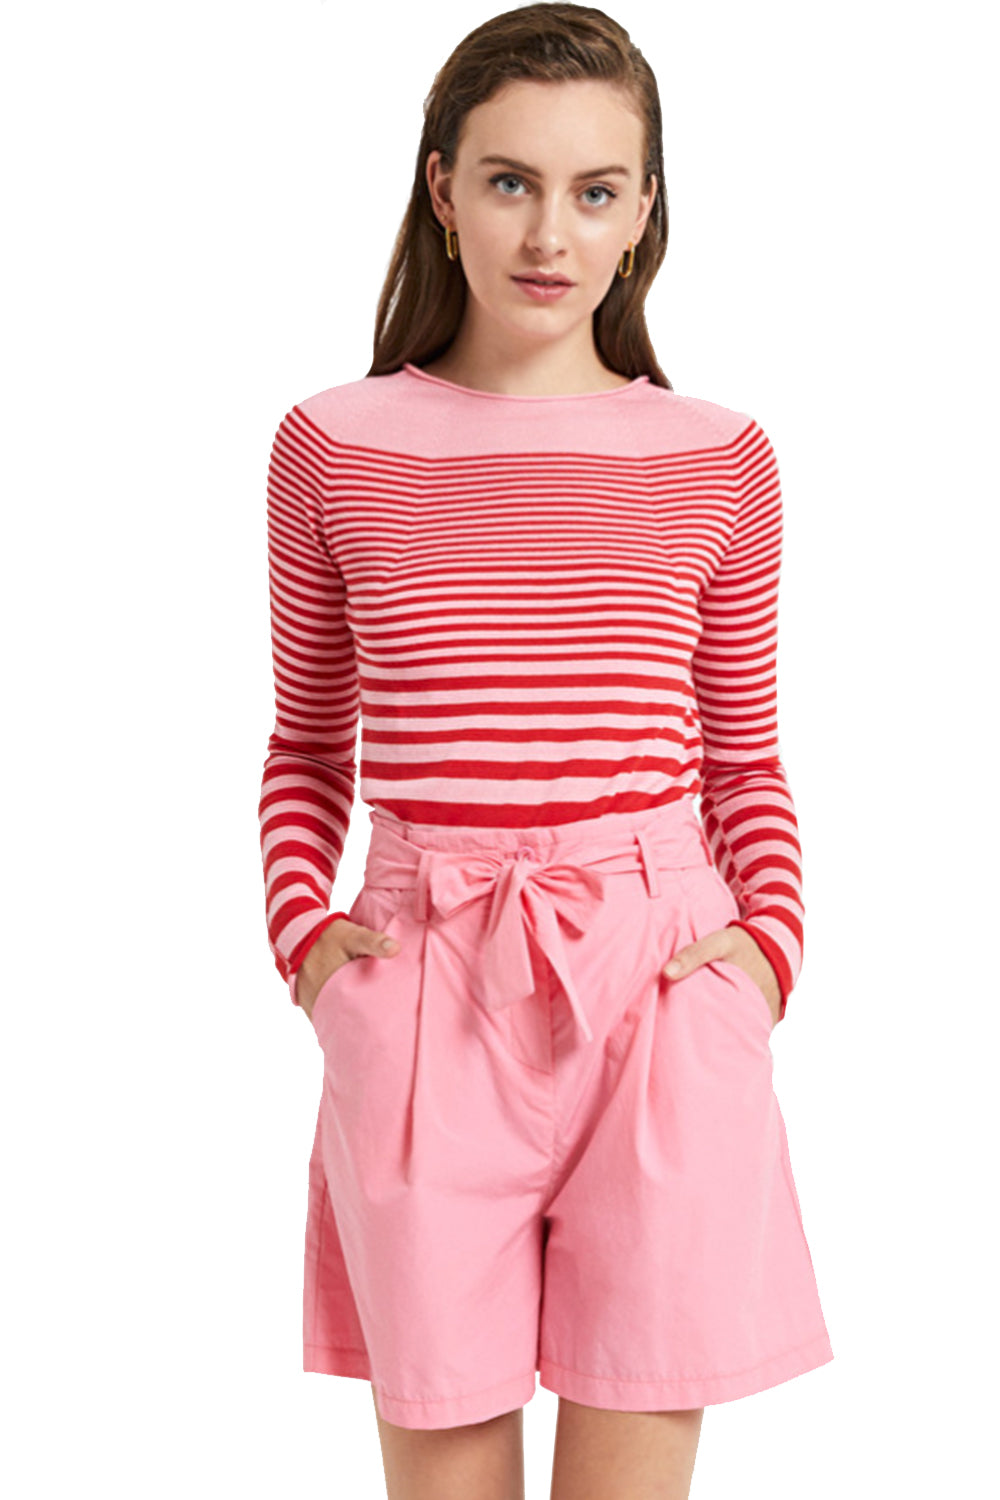 Ottodame Sweater EM7423 Stripe Turtle Neck Pink & Red